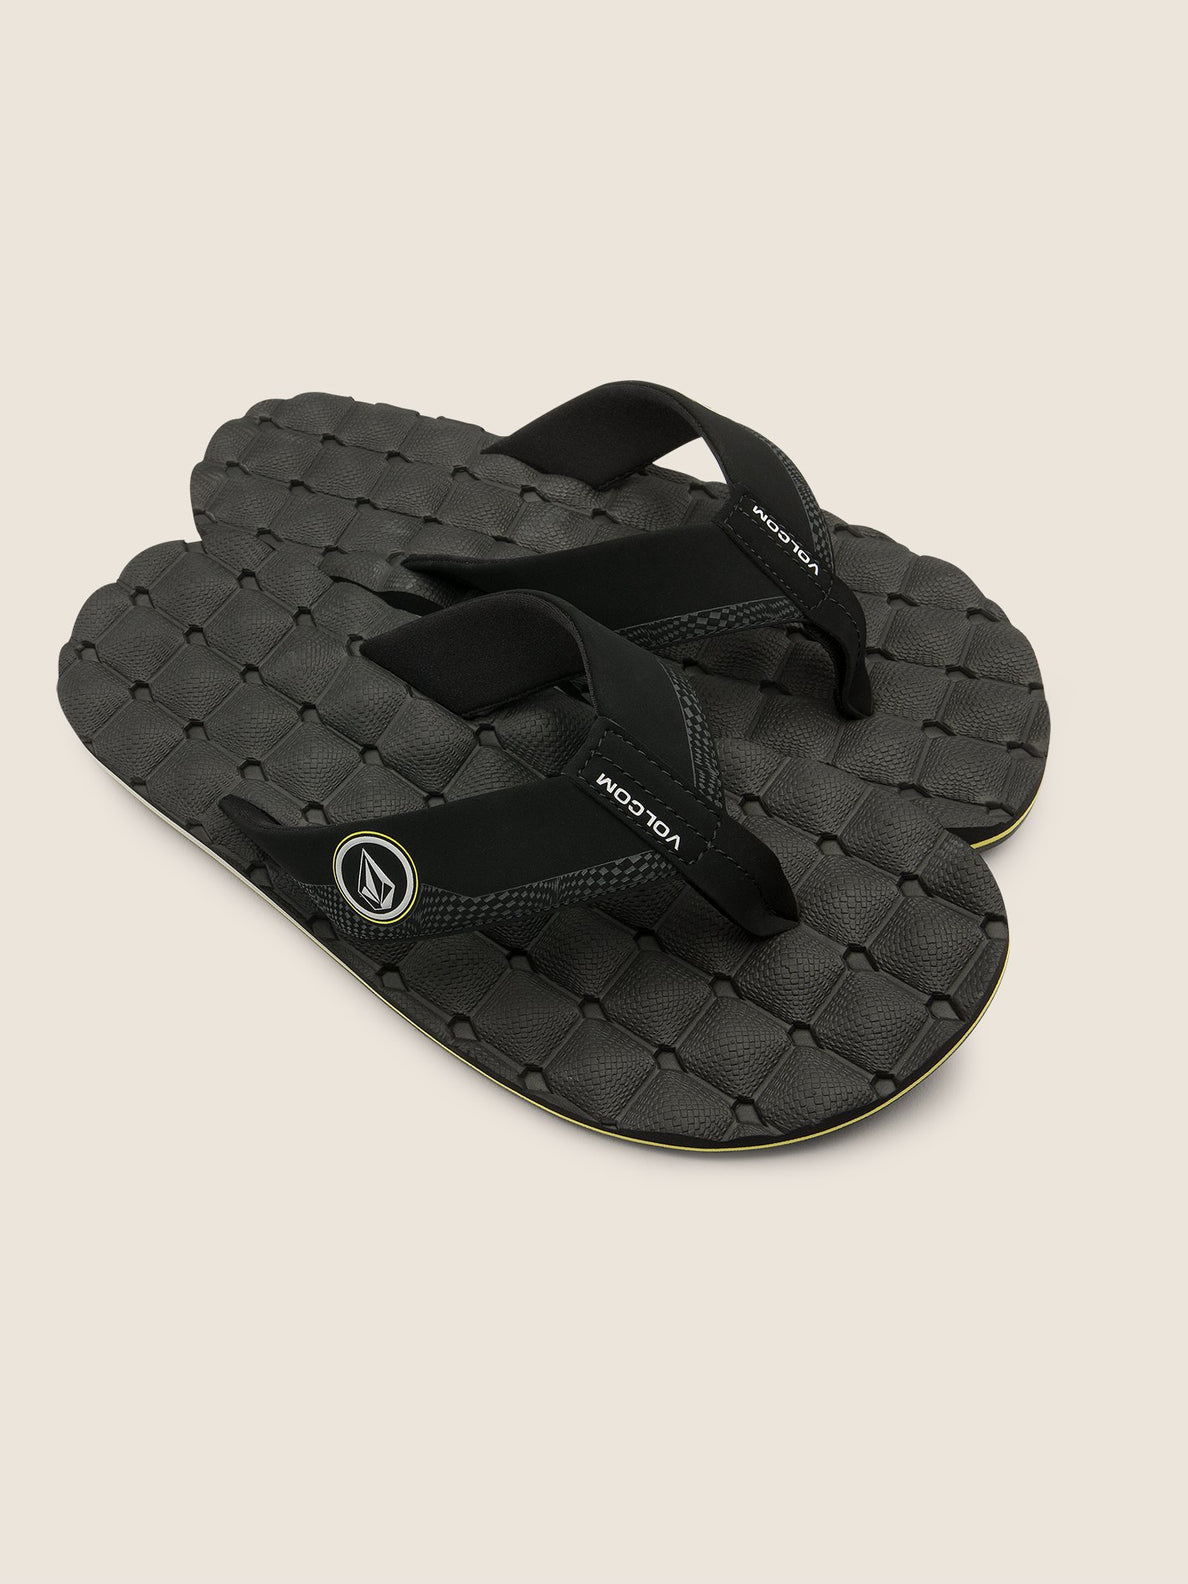 Recliner Sandals In Sulfur Black, Front View